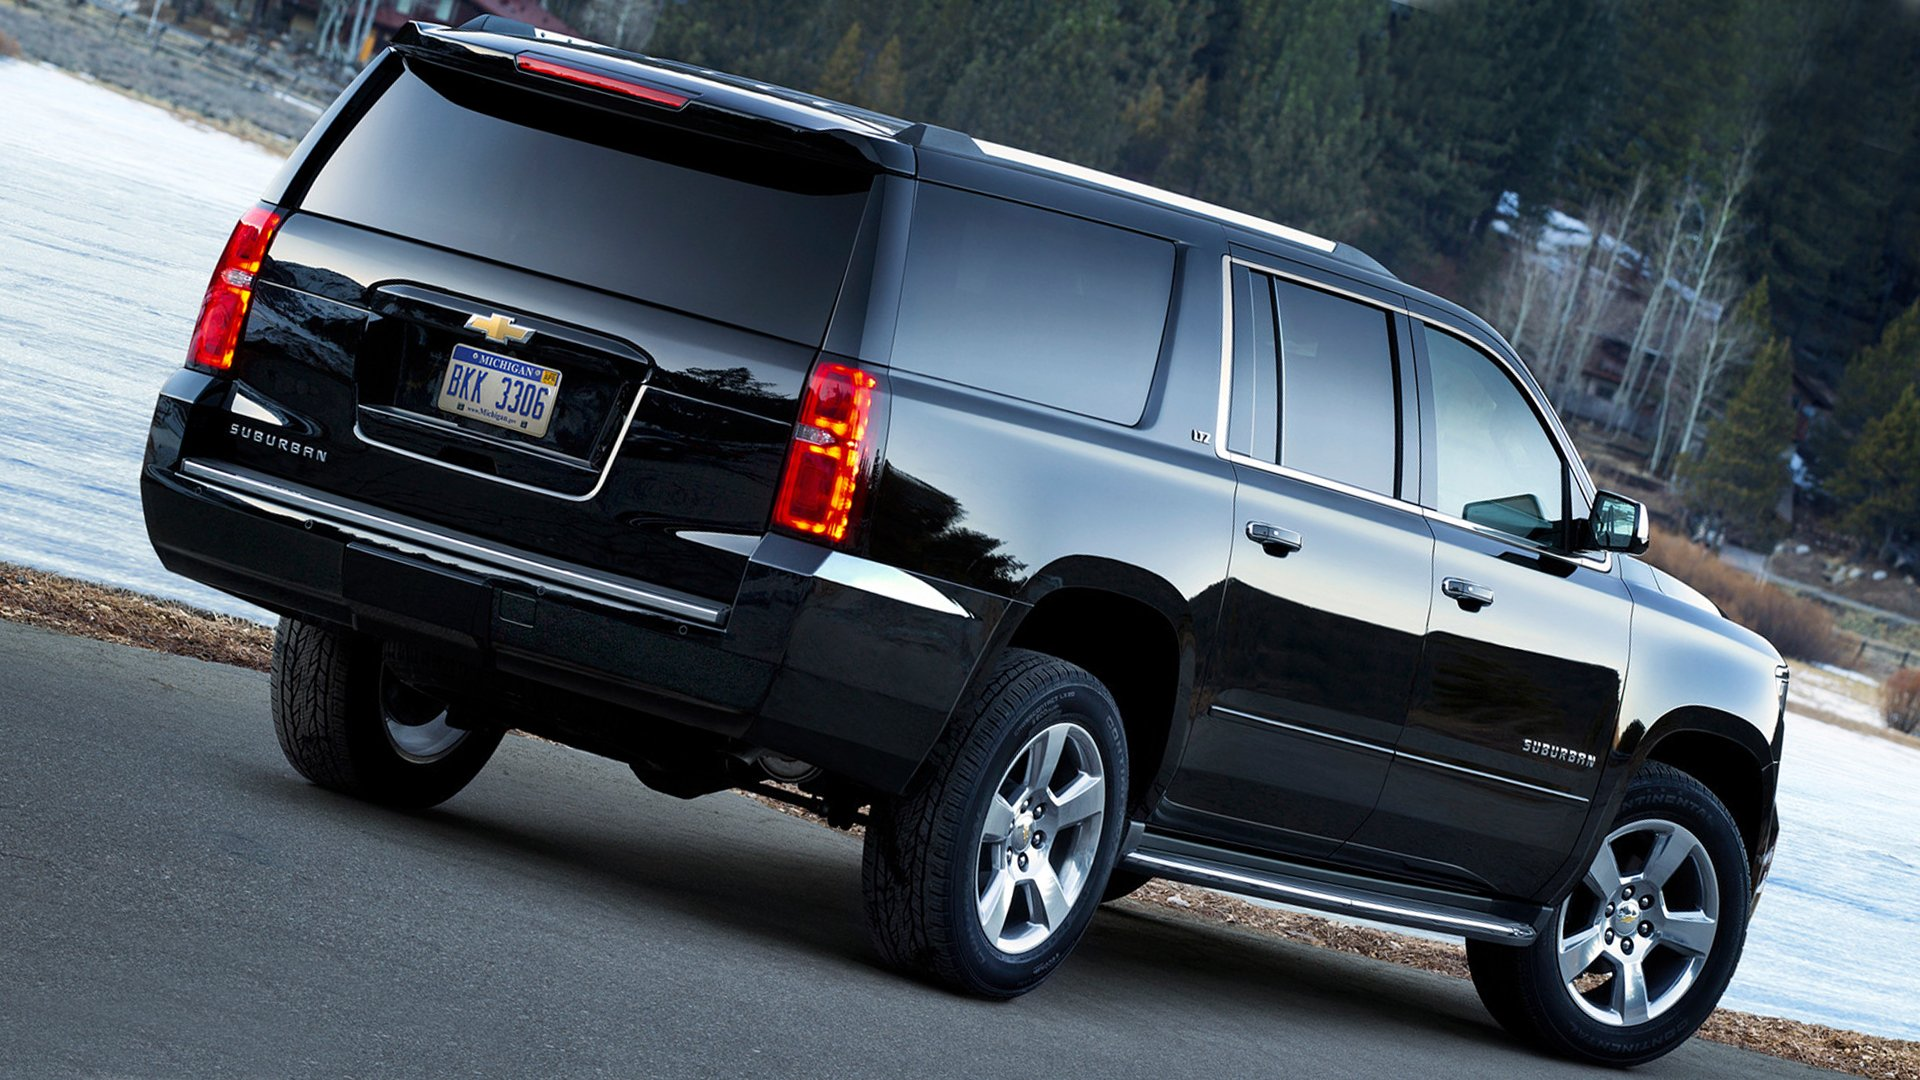 Black Chevrolet Suburban 2019 HD